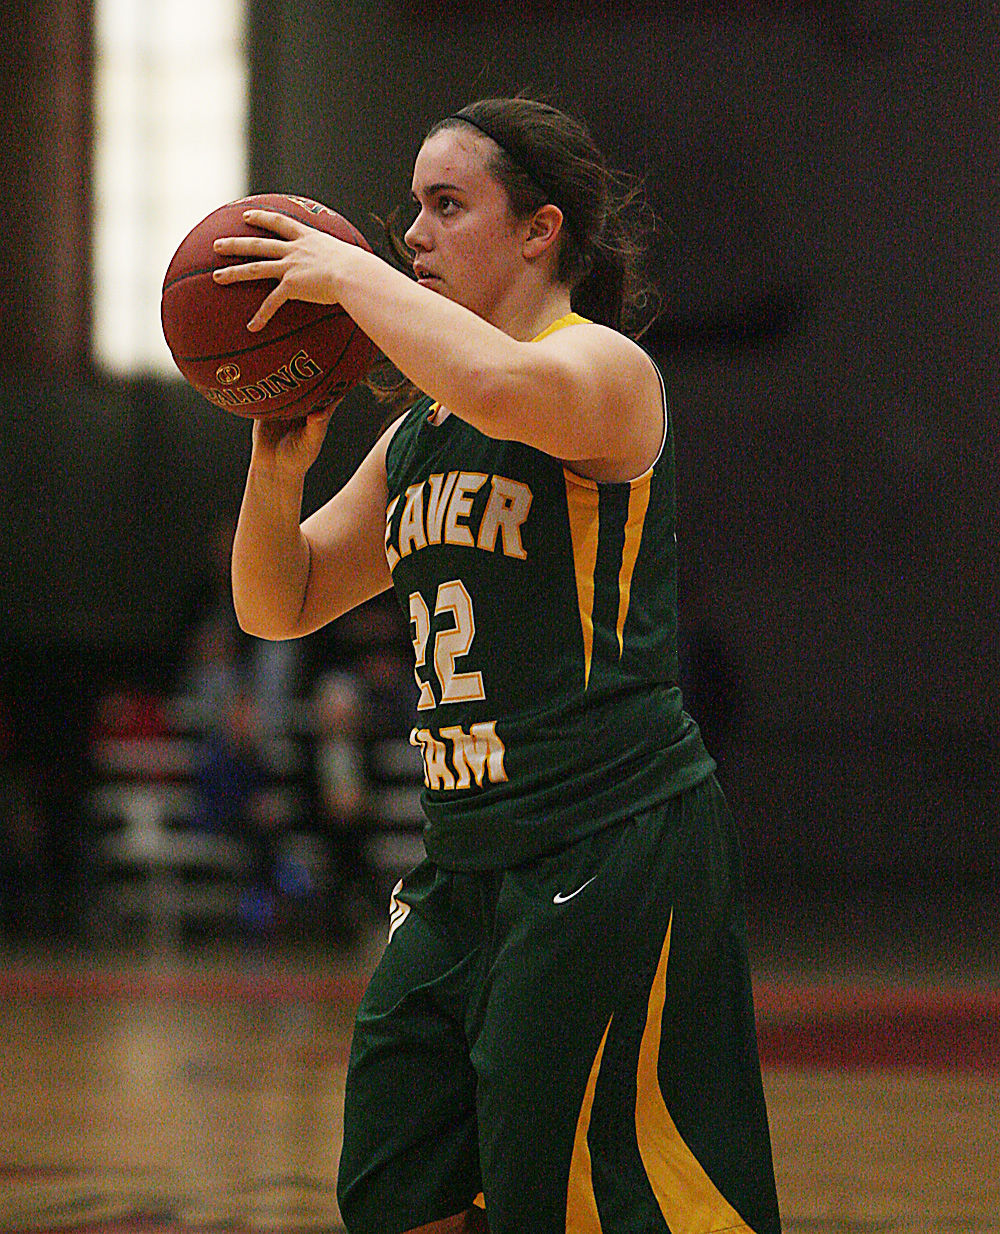 beaver dam single christian girls The beaver dam high school girls basketball team was approved to attend the naples holiday shootout tournament in naples, florida, over winter break next school year the beaver dam unified school .